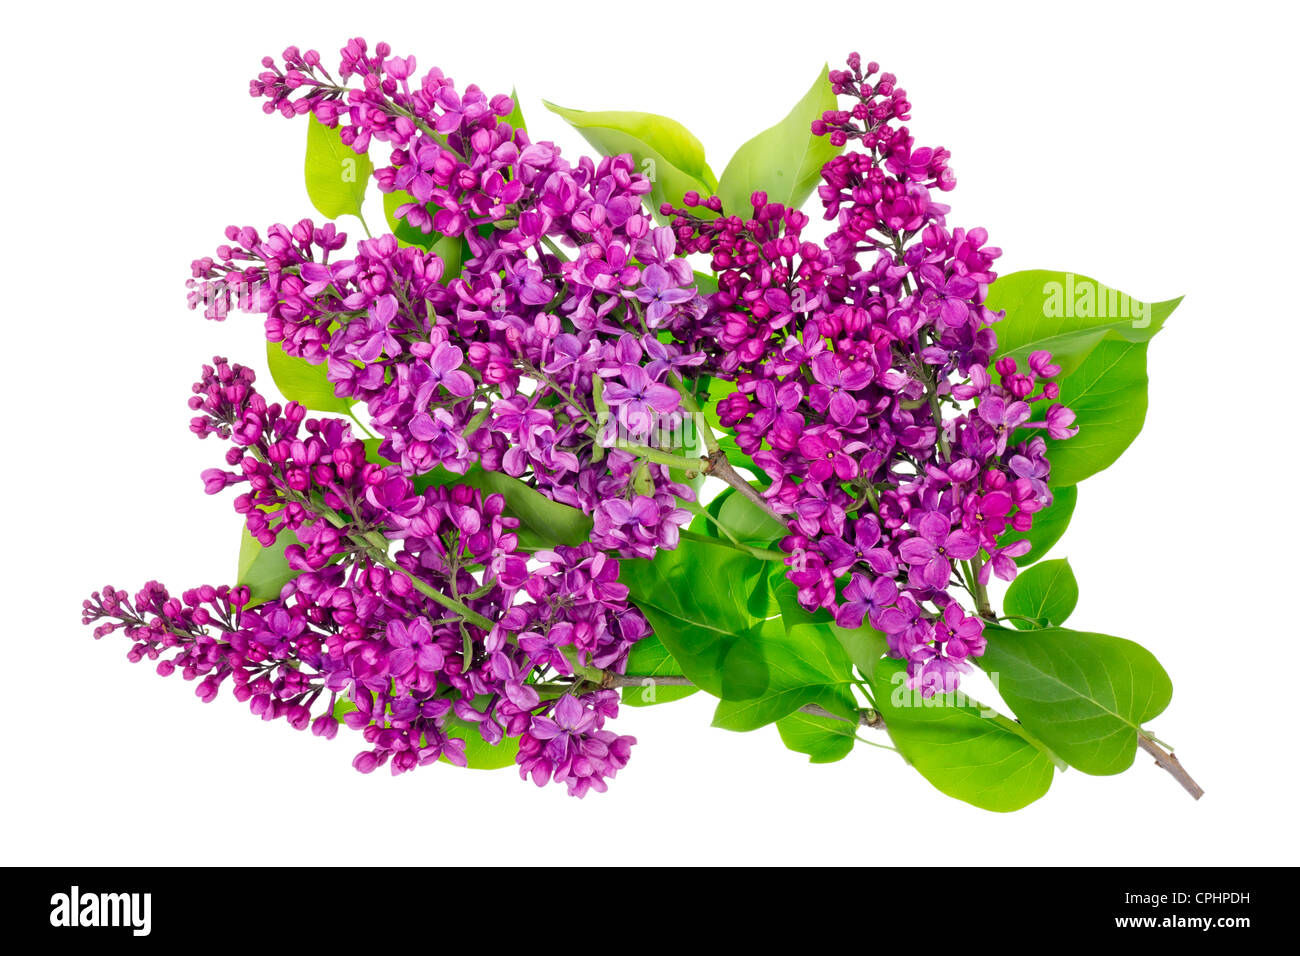 Purple spring lilac isolated branches with leaves high resolution studio shot - Stock Image